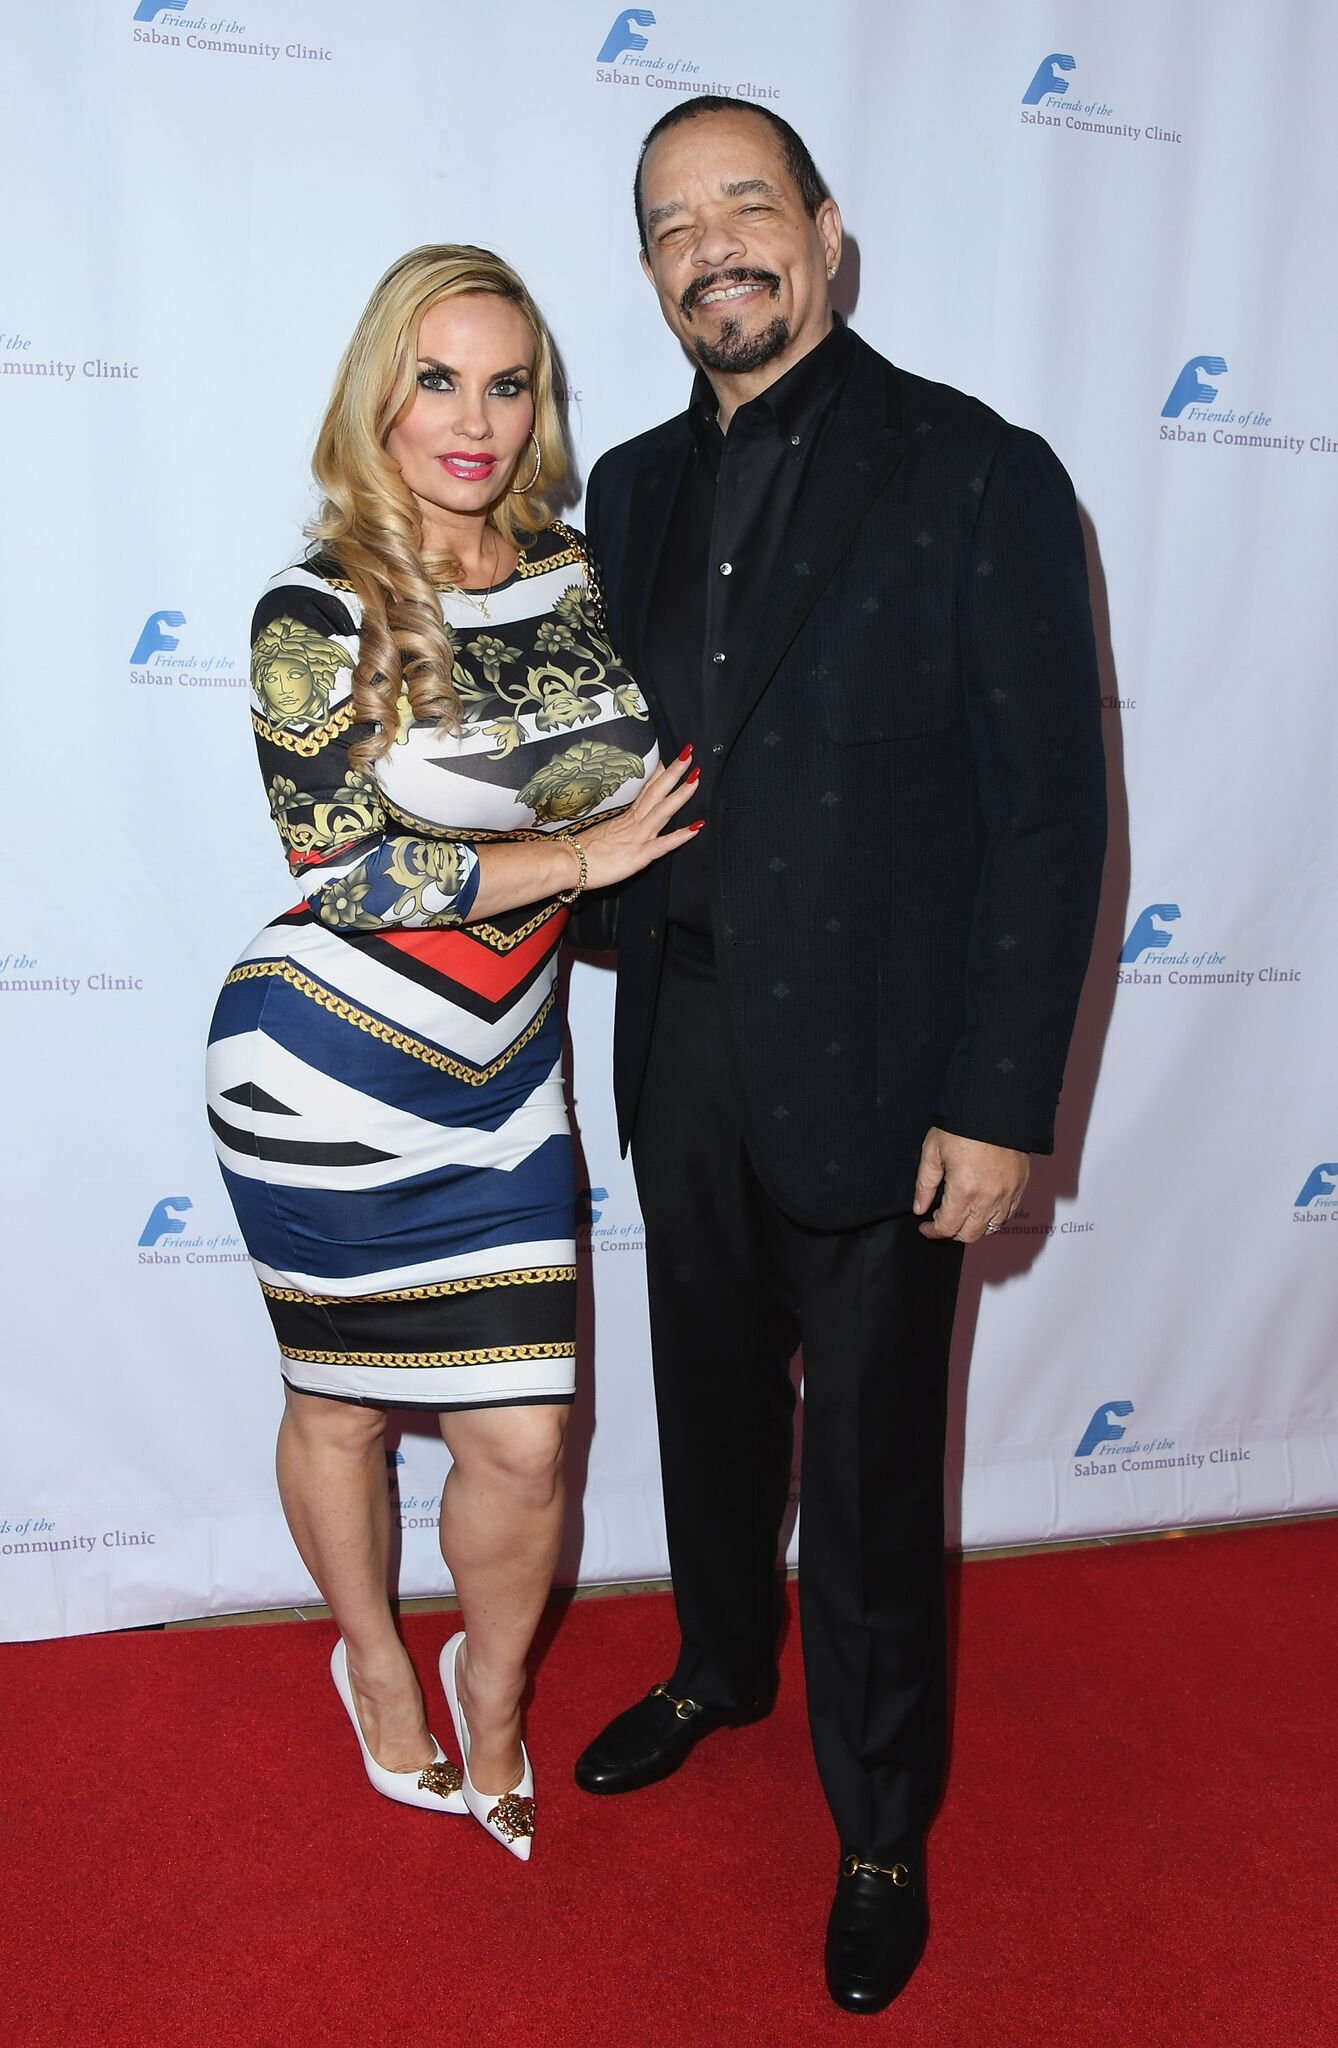 Coco Austin and Ice-T attend Friends Of The Saban Community Clinic's 42nd Annual Gala  | Getty Images